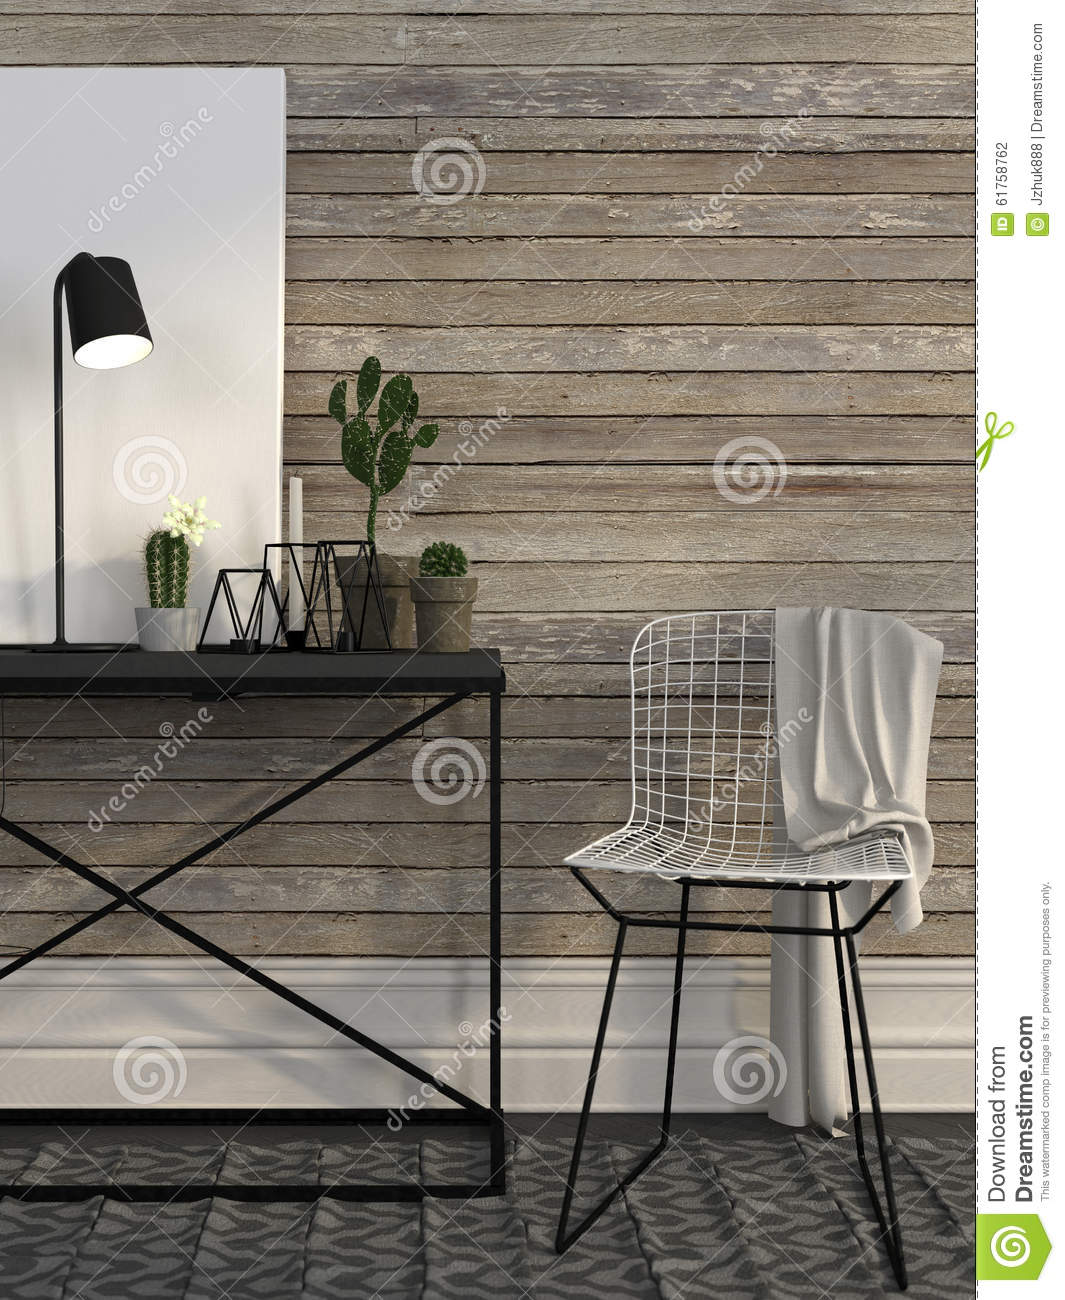 wire chair and metal table against a wall of brown boards stock illustration image 61758762. Black Bedroom Furniture Sets. Home Design Ideas